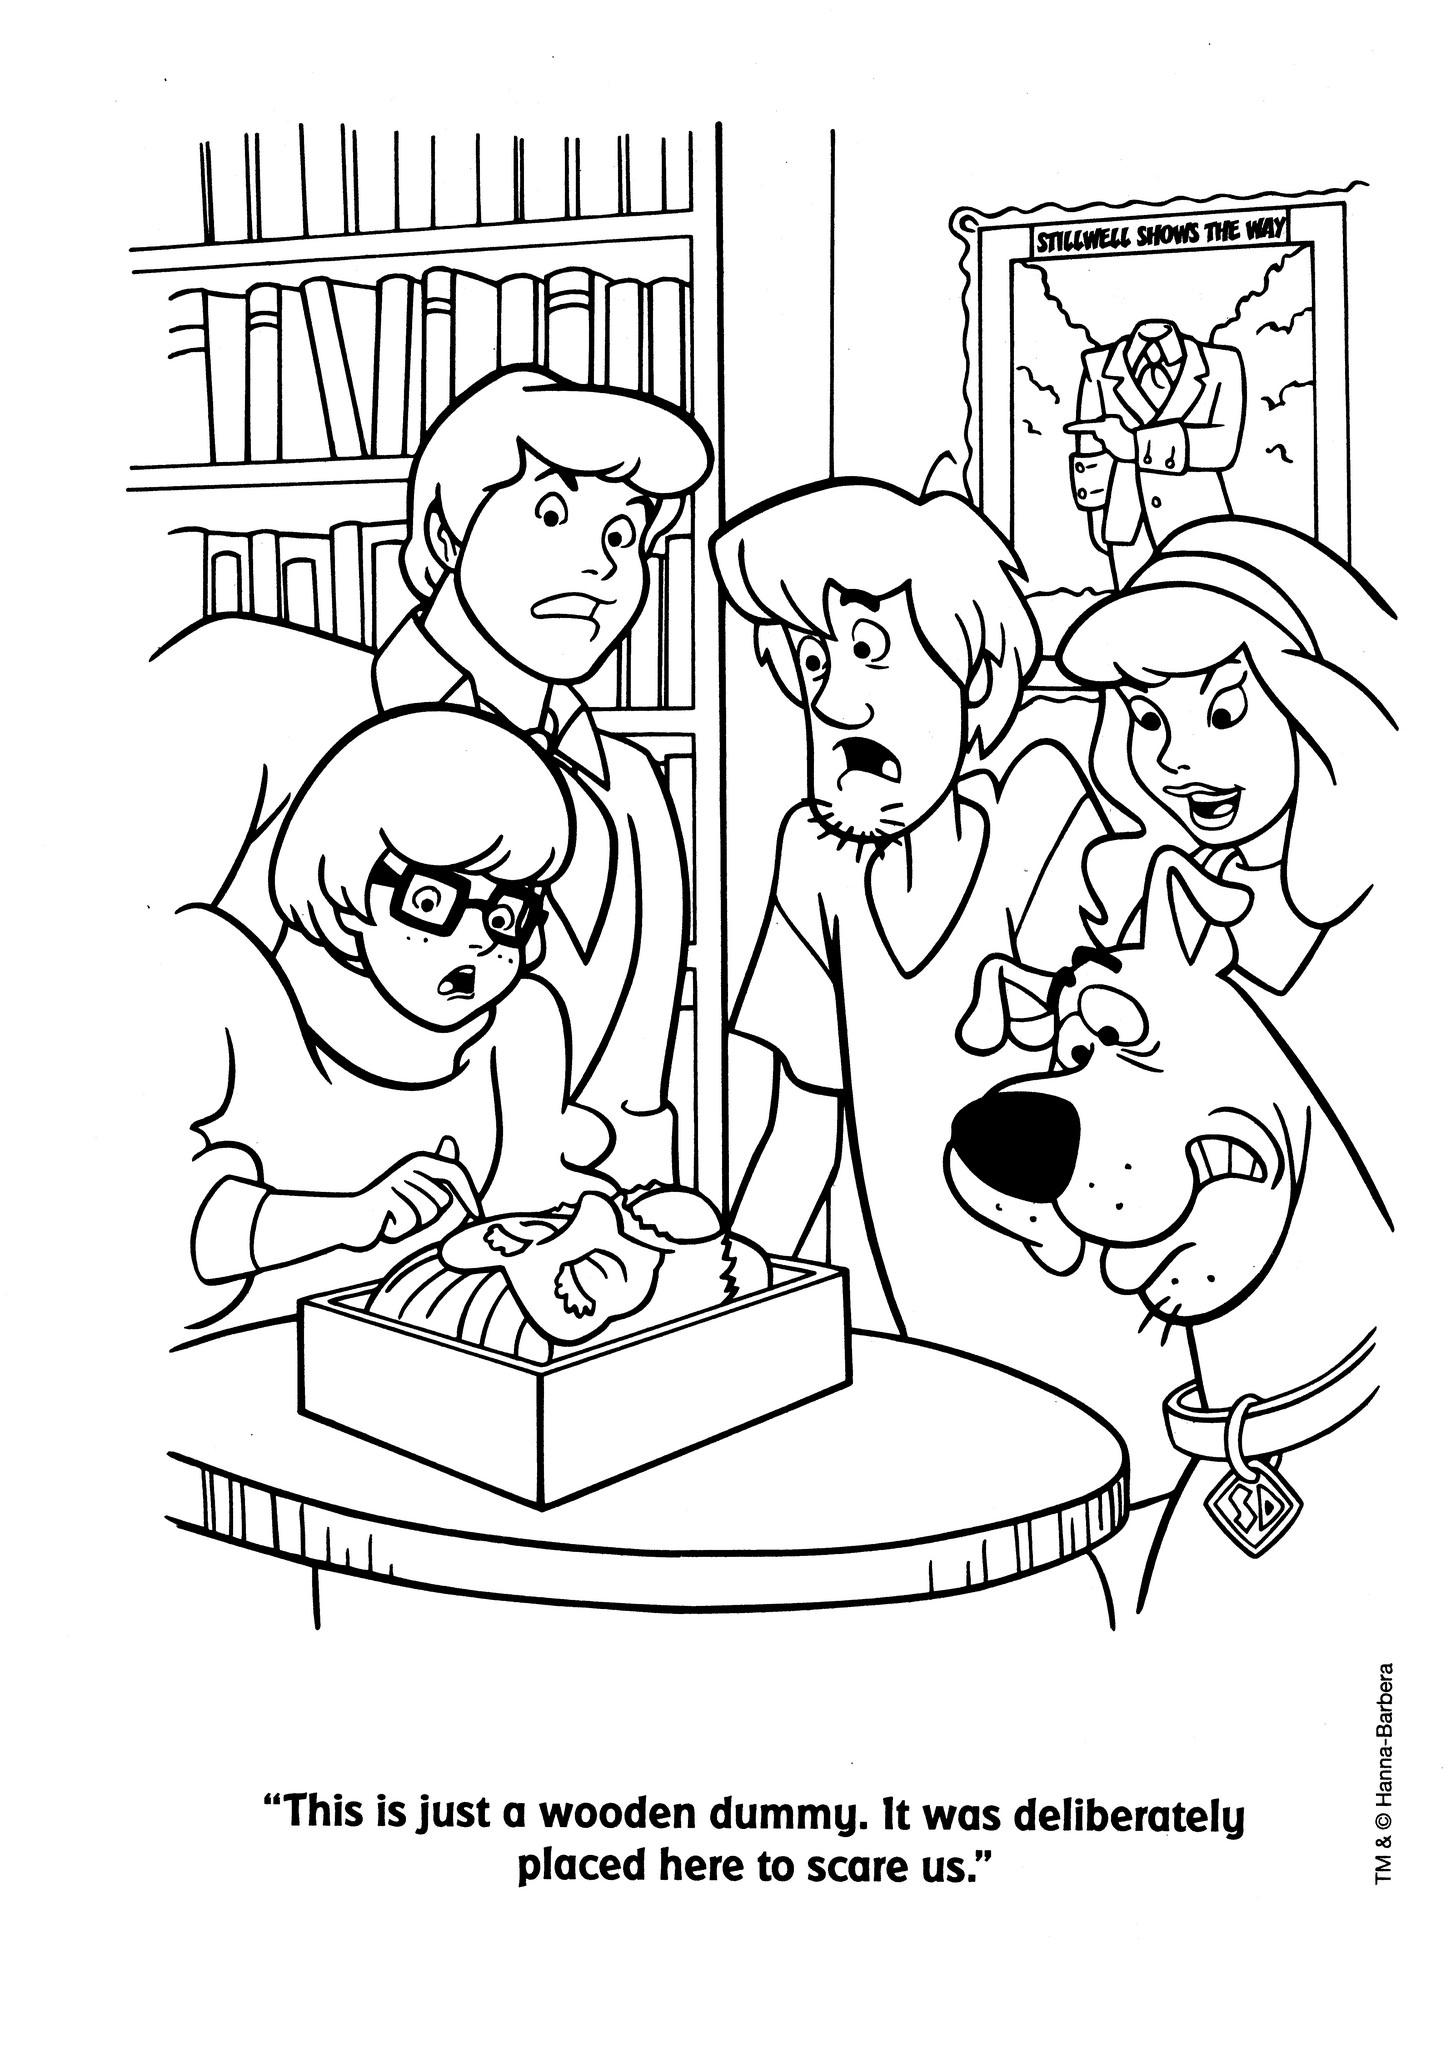 Scooby Doo Worksheets Kindergarten | Printable Worksheets dedans Scooby Doo À Colorier